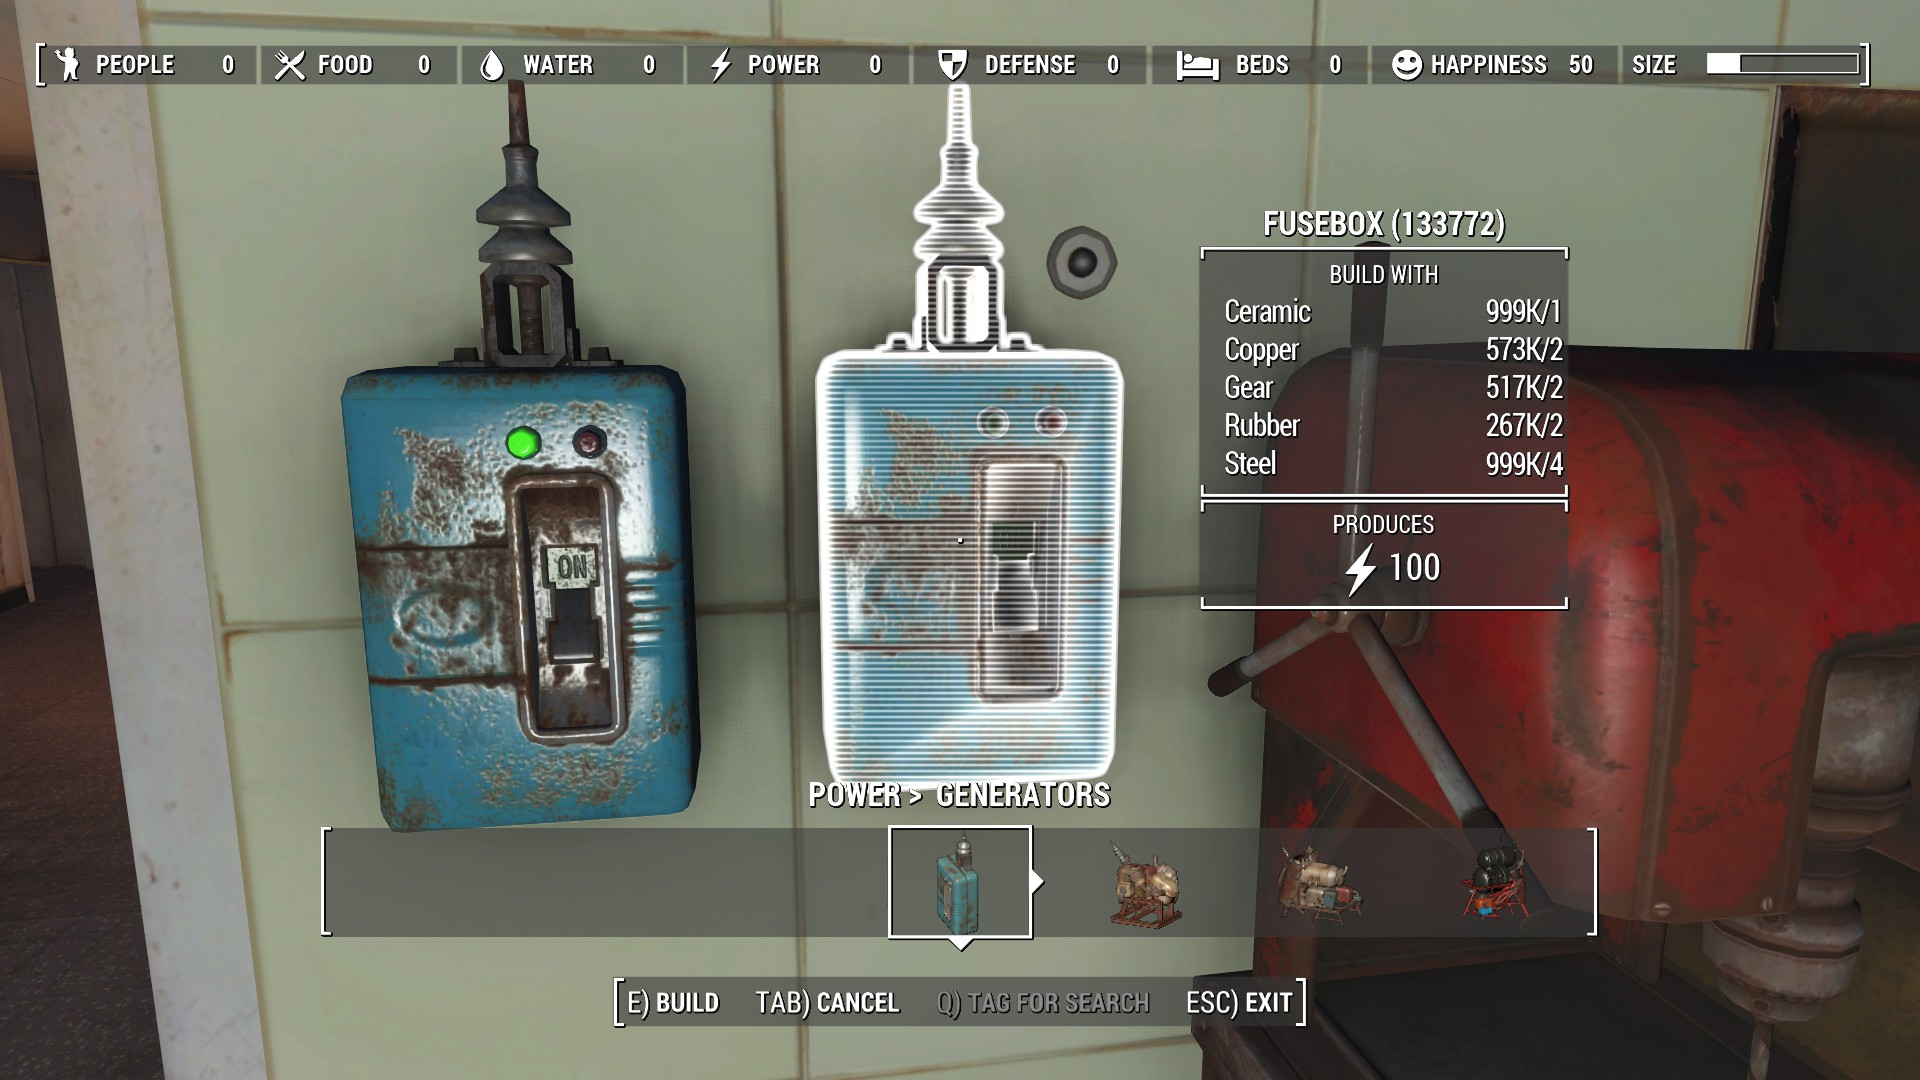 Generator Fusebox generator fusebox fallout 4 fo4 mods fallout 4 fuse box at aneh.co